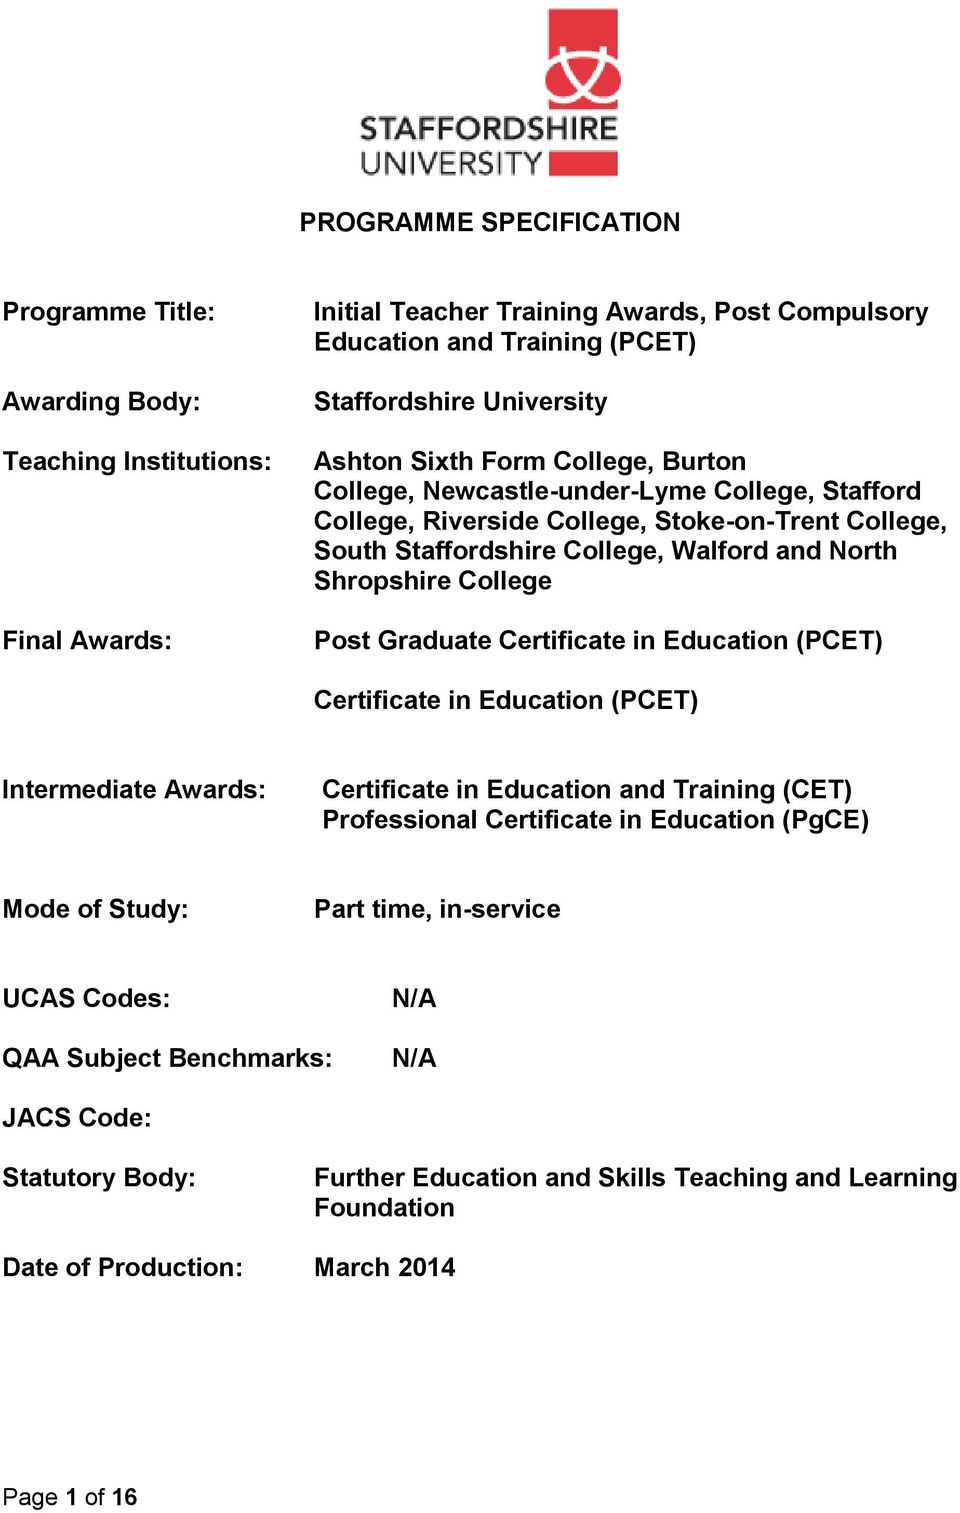 Post Graduate Certificate in Education (PCET) Certificate in Education (PCET) Intermediate Awards: Certificate in Education and Training (CET) Professional Certificate in Education (PgCE) Mode